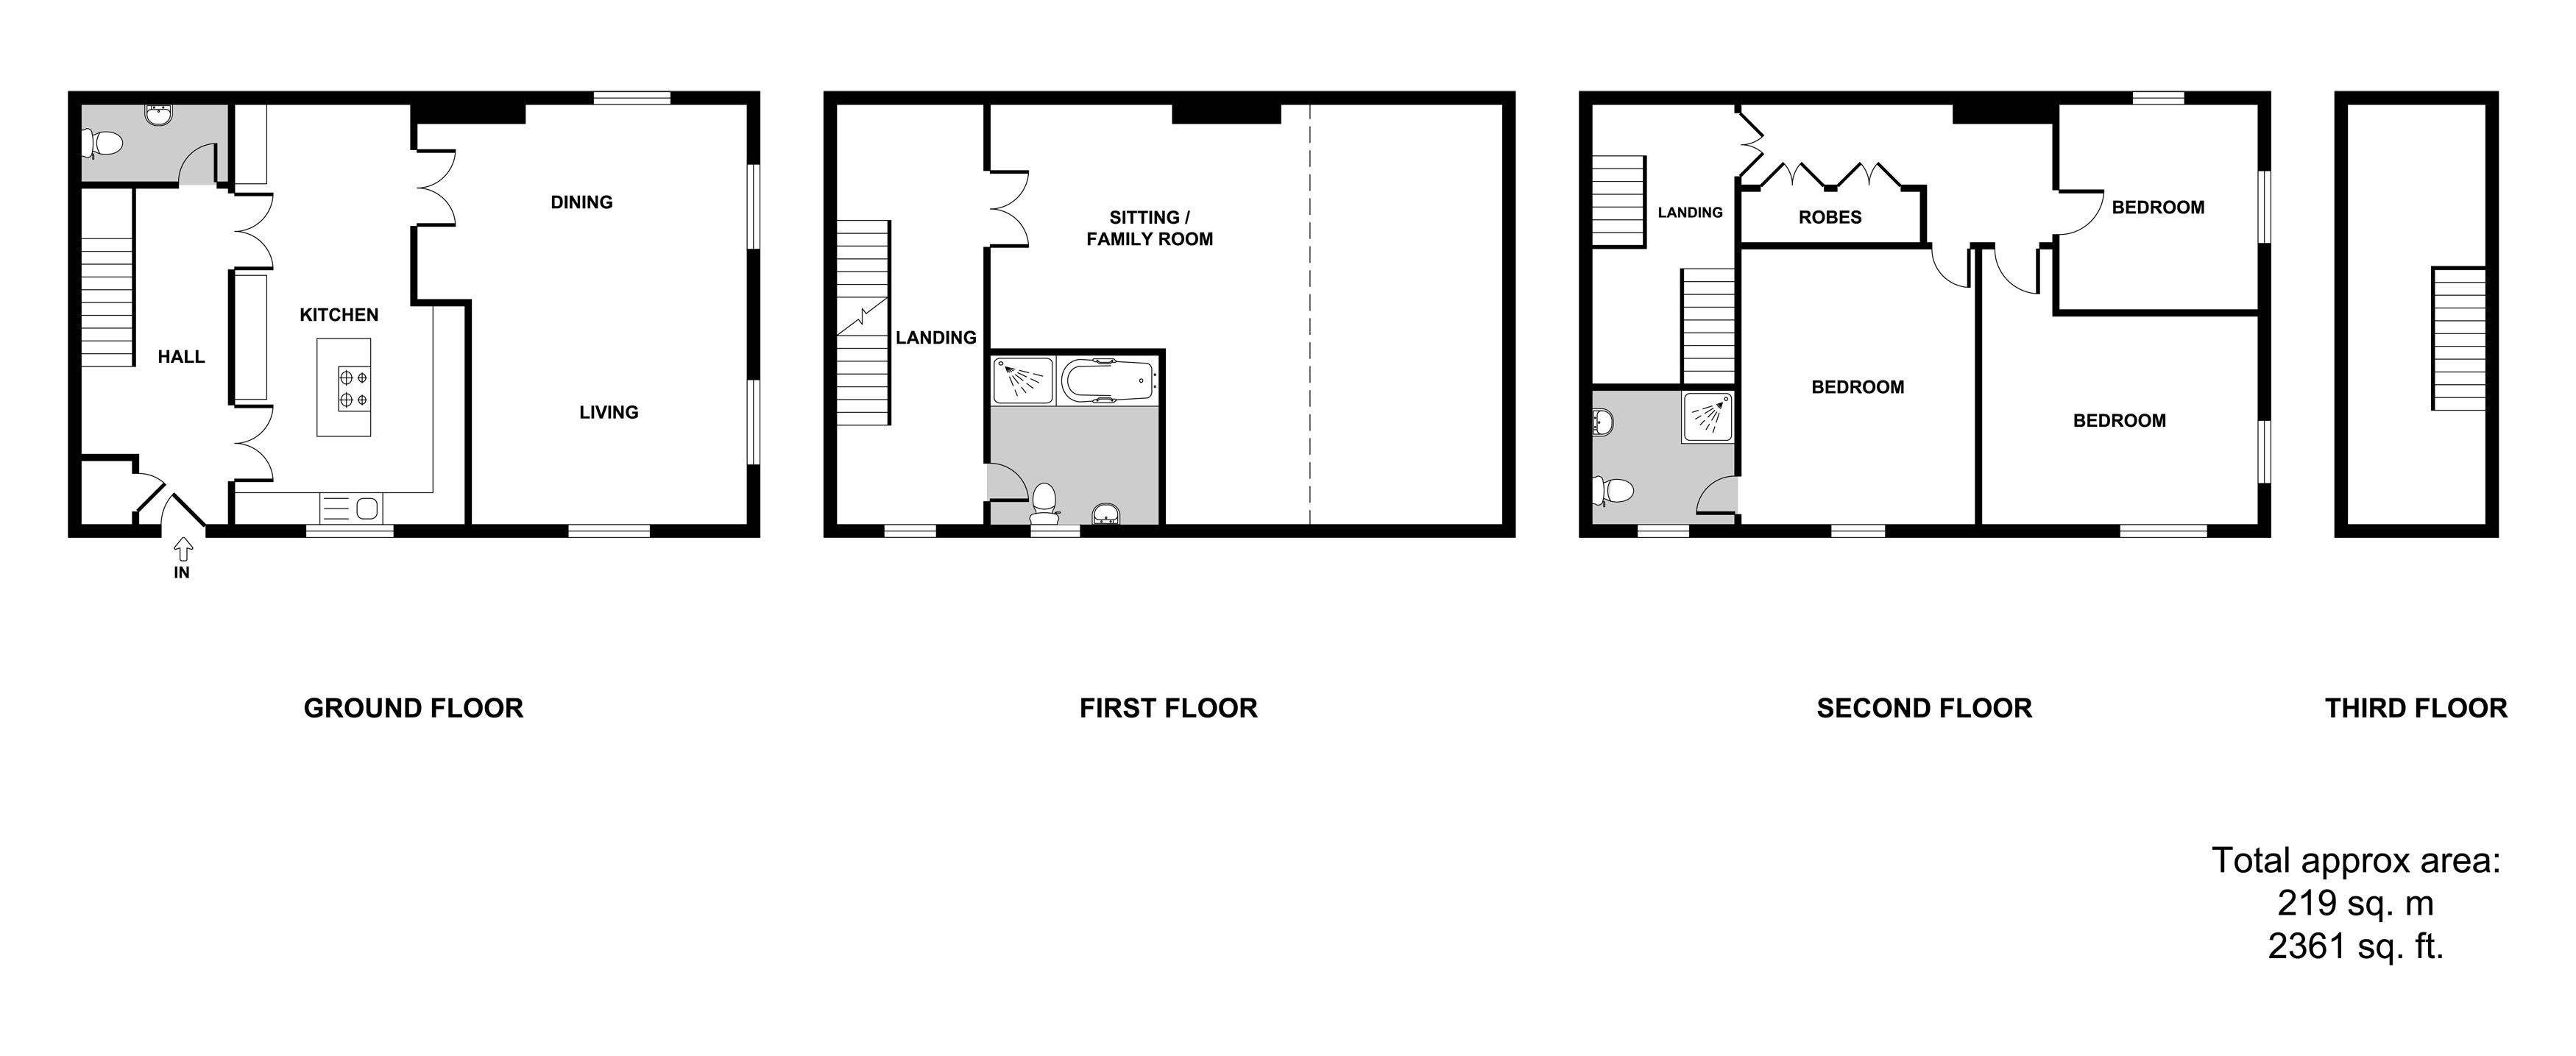 St Georges Wicklewood Wymondham Nr18 4 Bedroom Town House For Sale 46010281 Primelocation